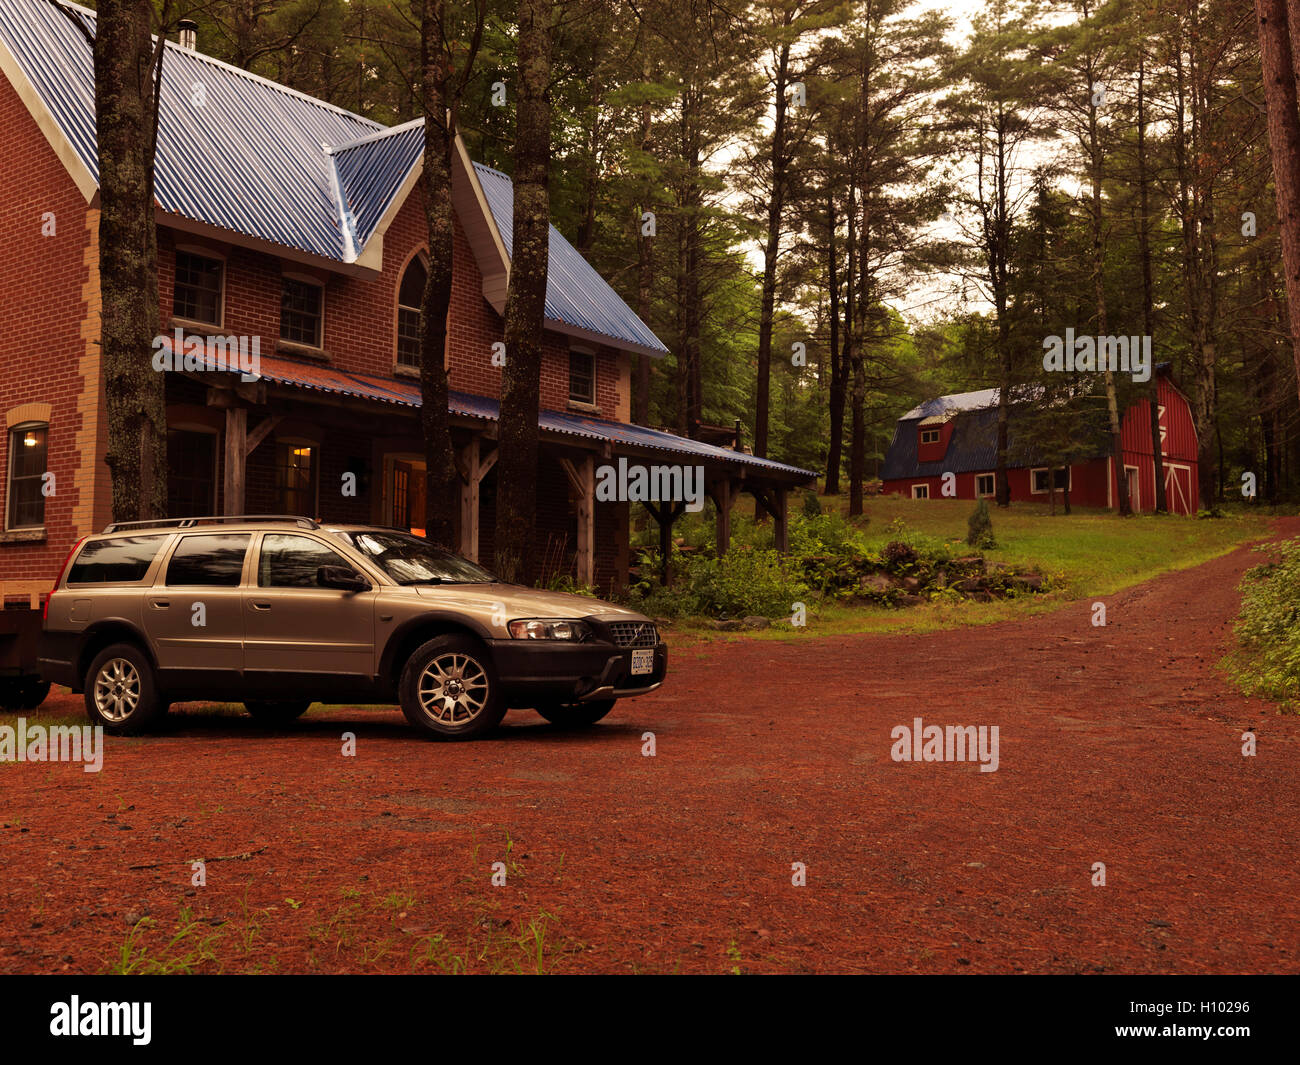 Brick country house or cottage and Volvo XC70 station wagon car in Muskoka, Ontario, Canada countryside scenery. - Stock Image